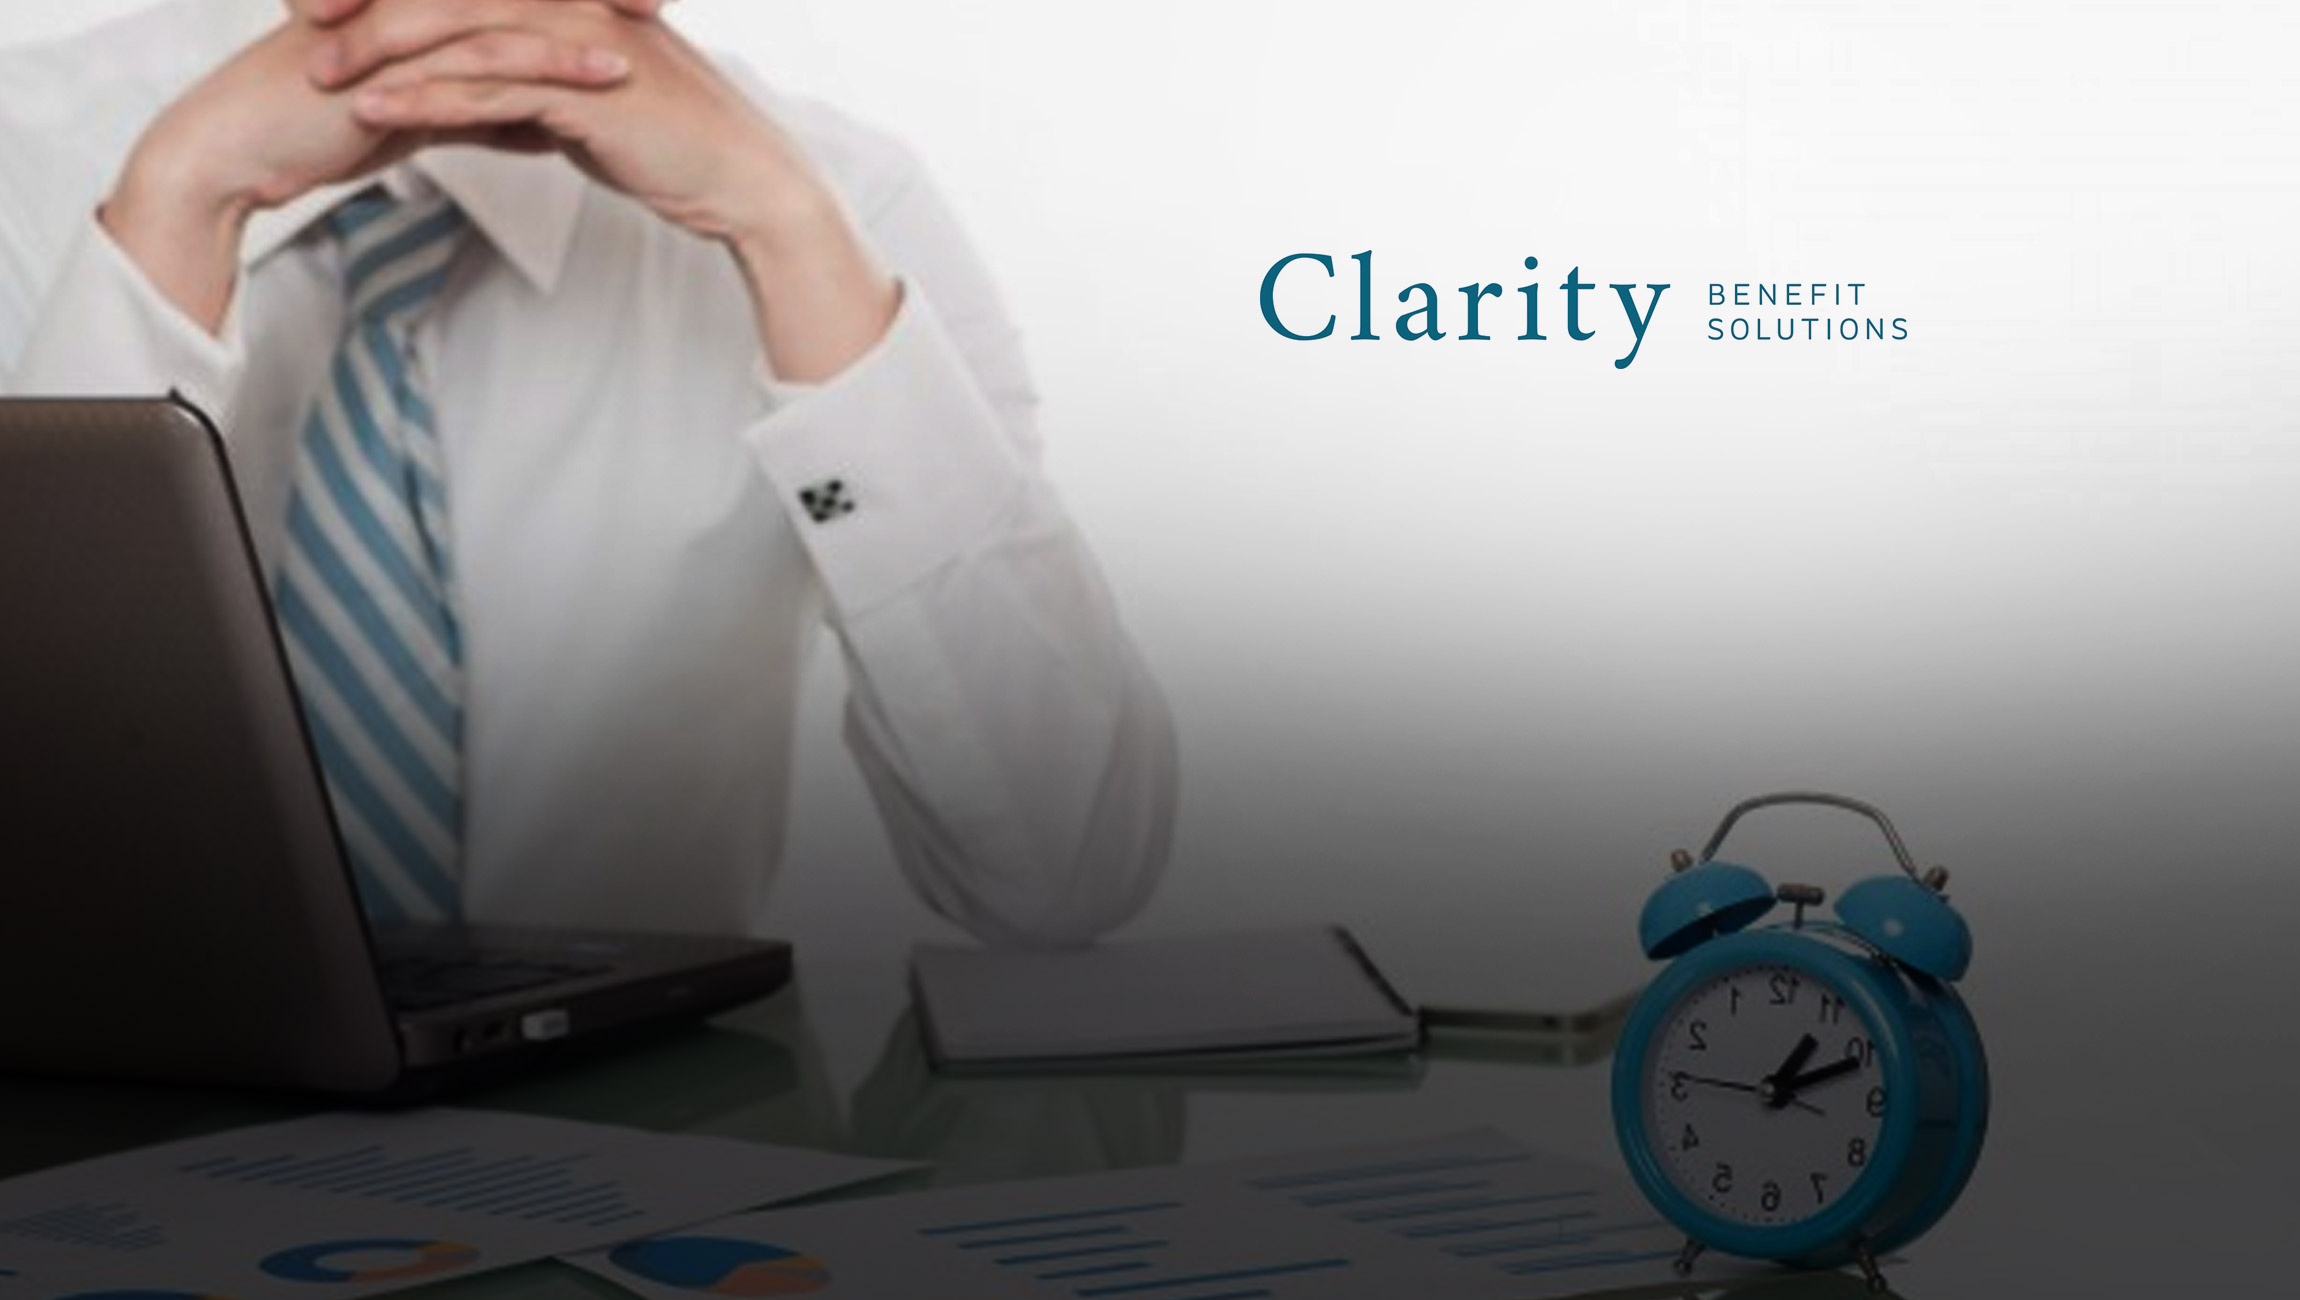 Benefits Administration Company, Clarity Benefit Solutions, Shares How Technology is Consumerizing Benefits